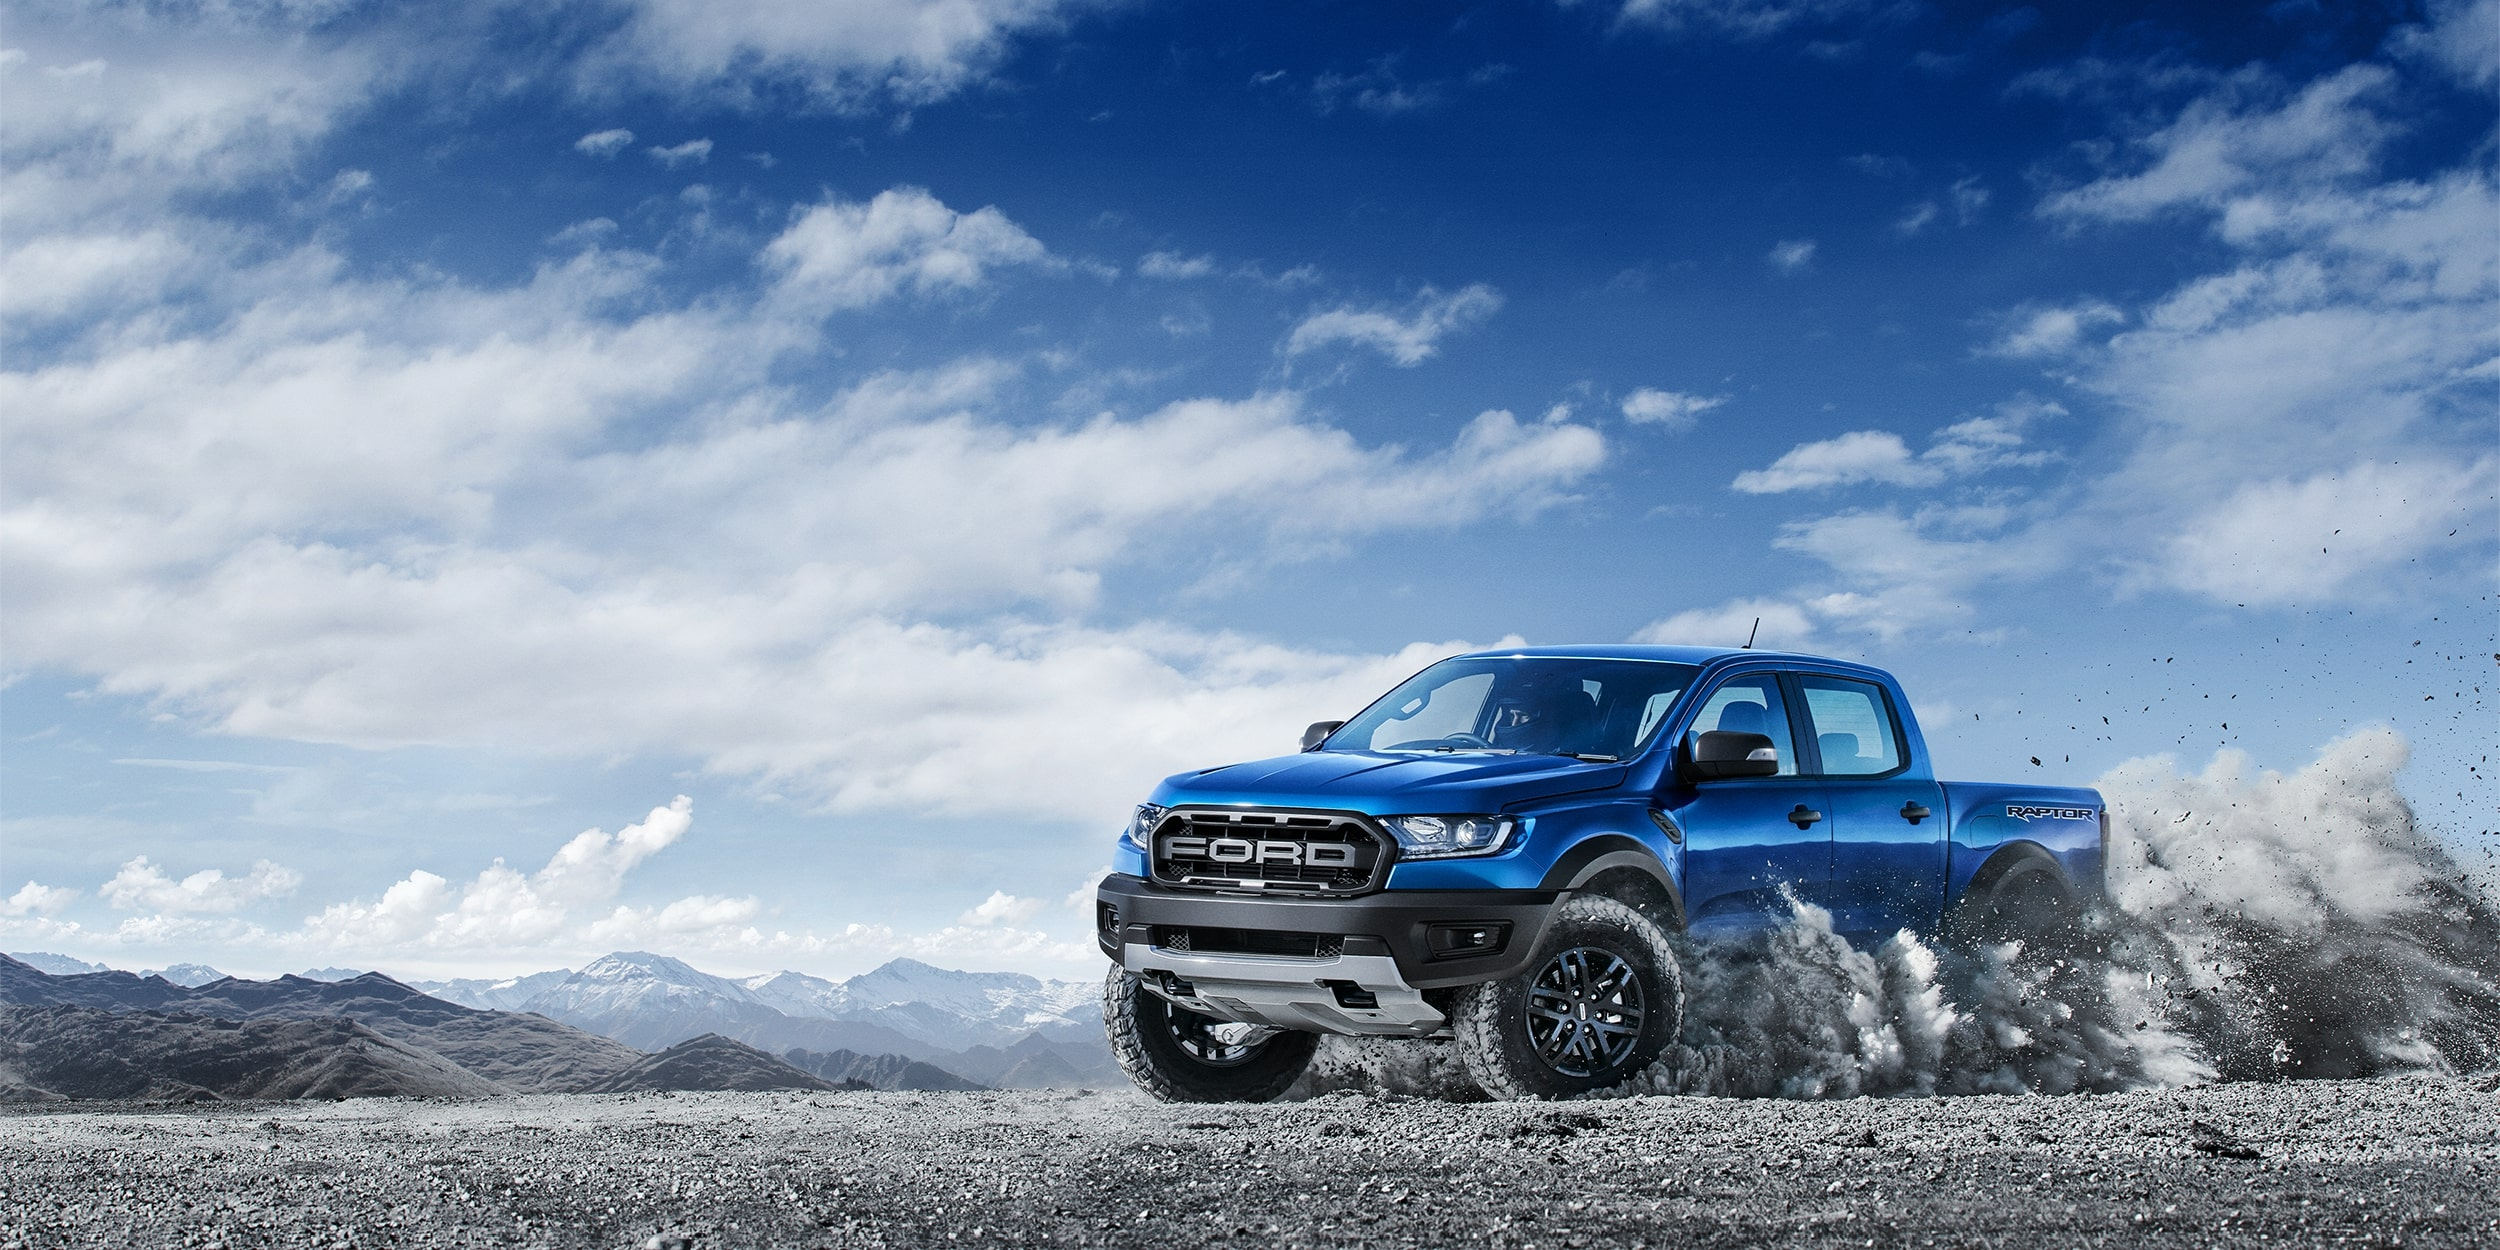 2500x1250 - Ford Ranger Wallpapers 10